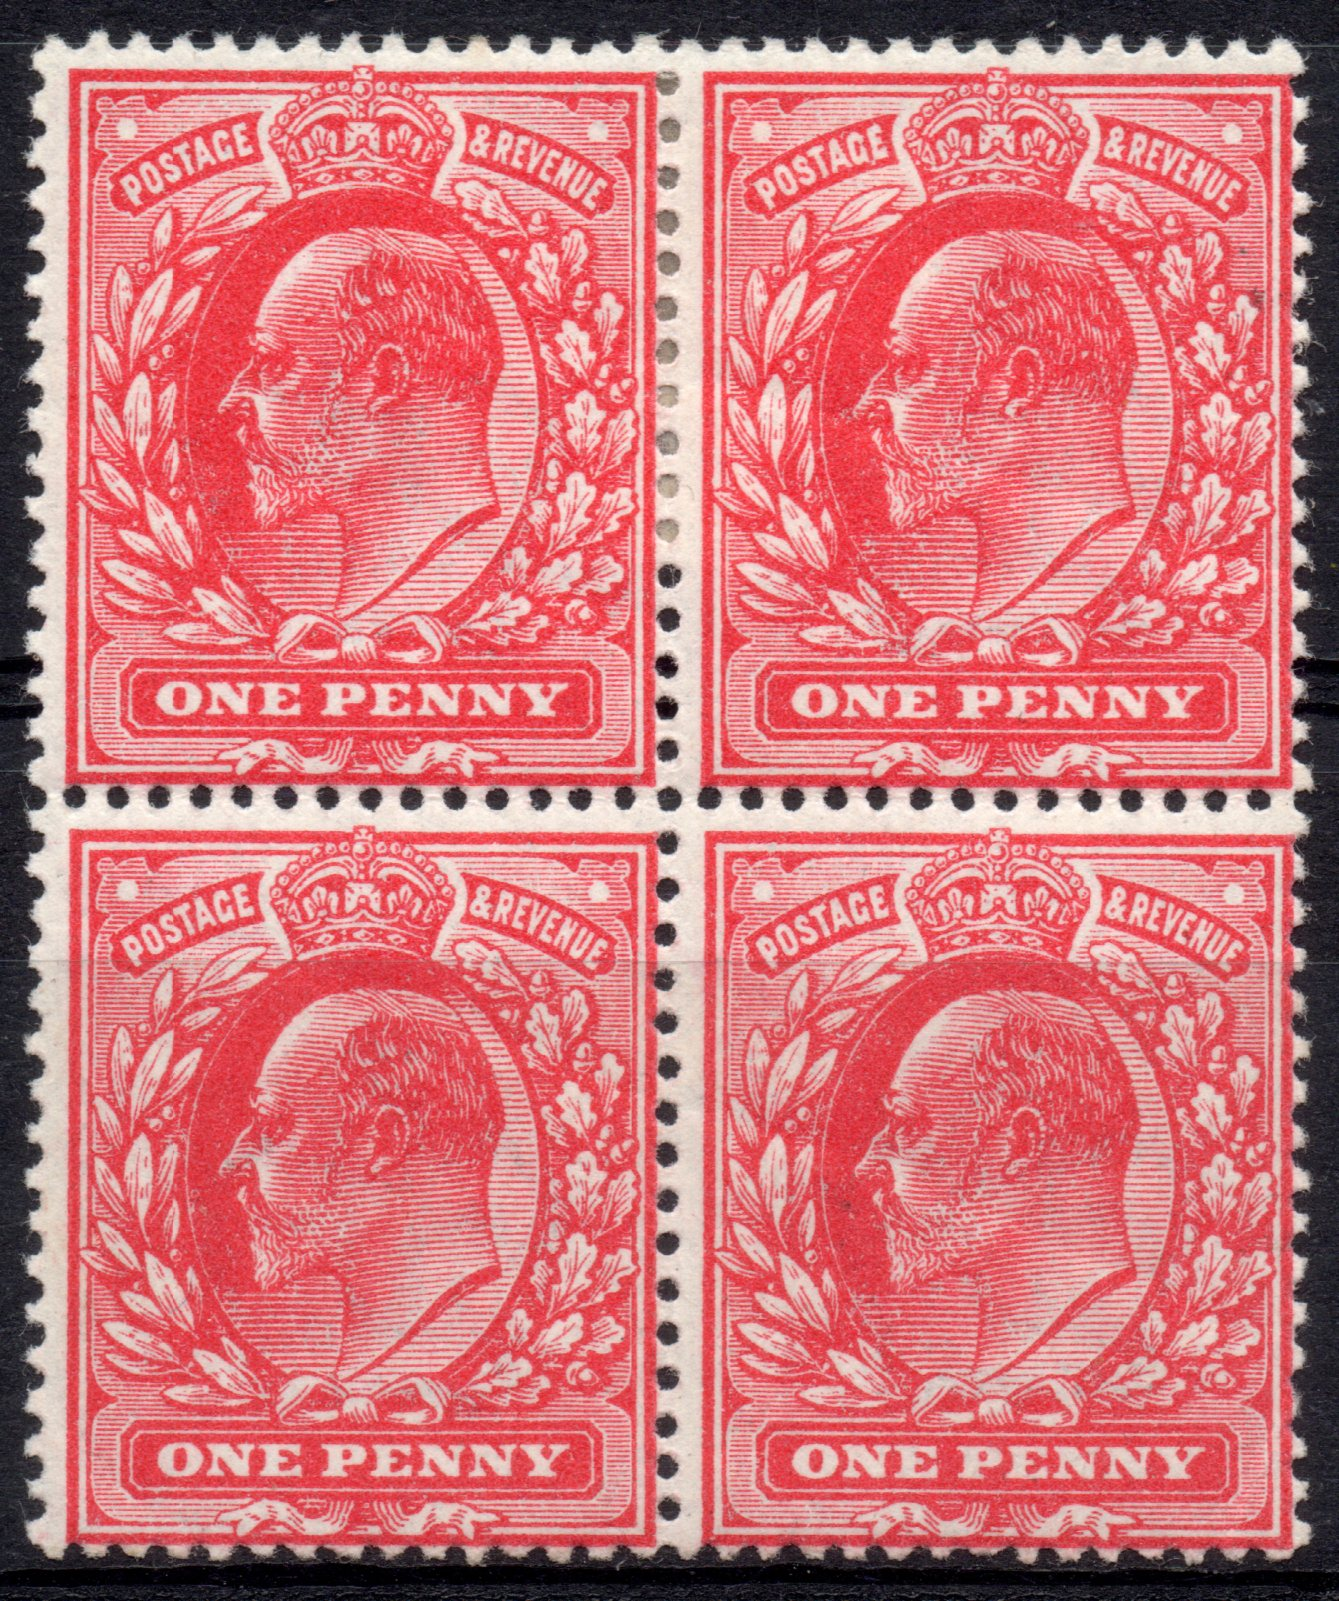 1911 1d Harrison Rose-red Perf 15 Mint Block of Four